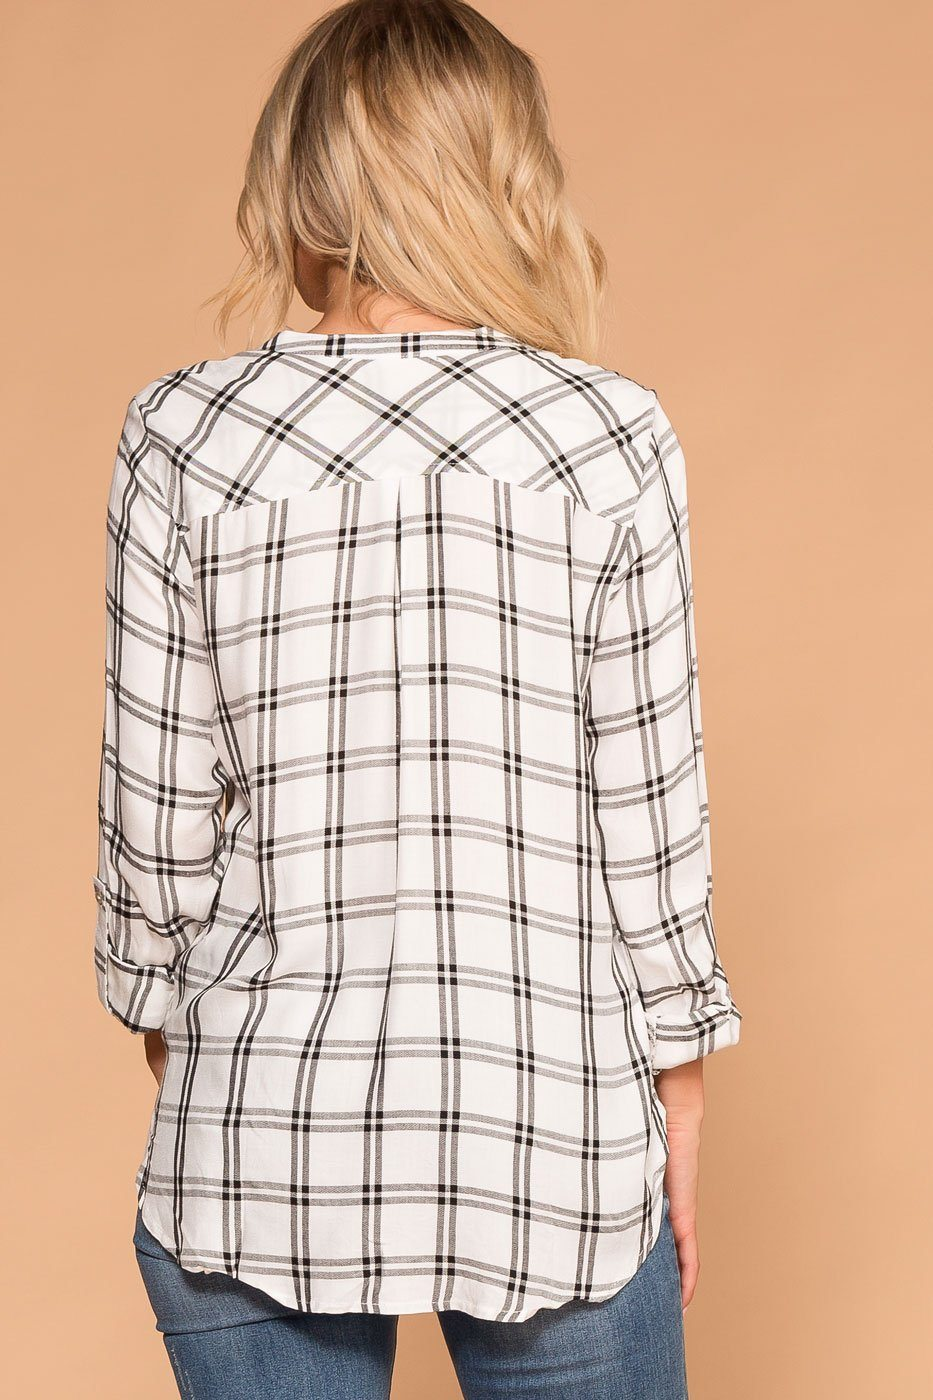 White and Black Plaid Button Top